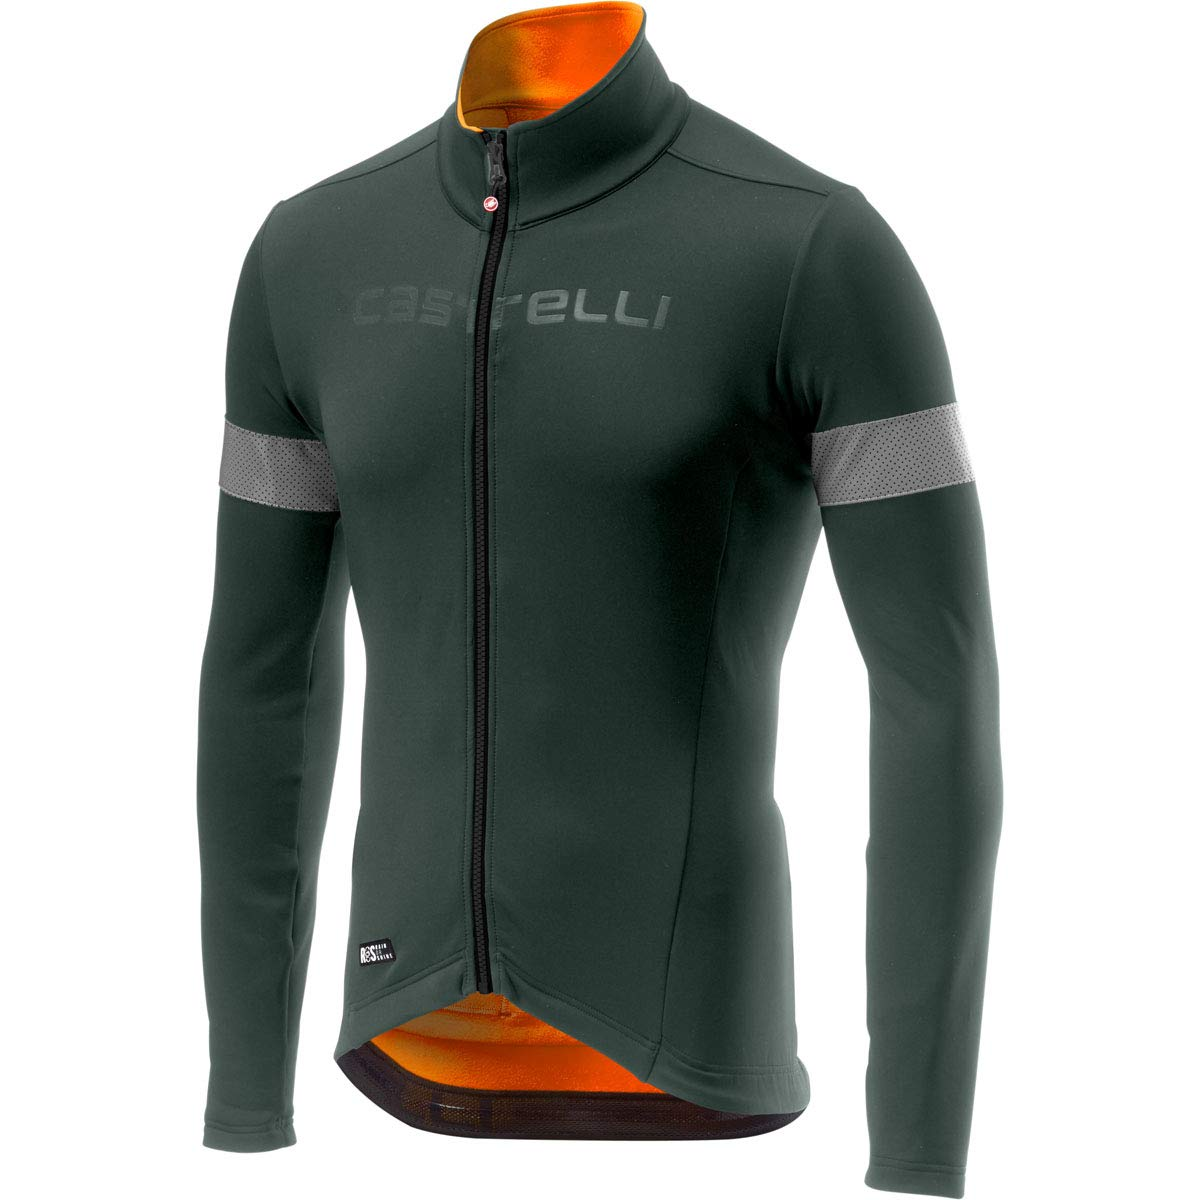 Castelli Nelmezzo ROS ジャージ XX-Large forest gray/orange B07H8QBW9Q